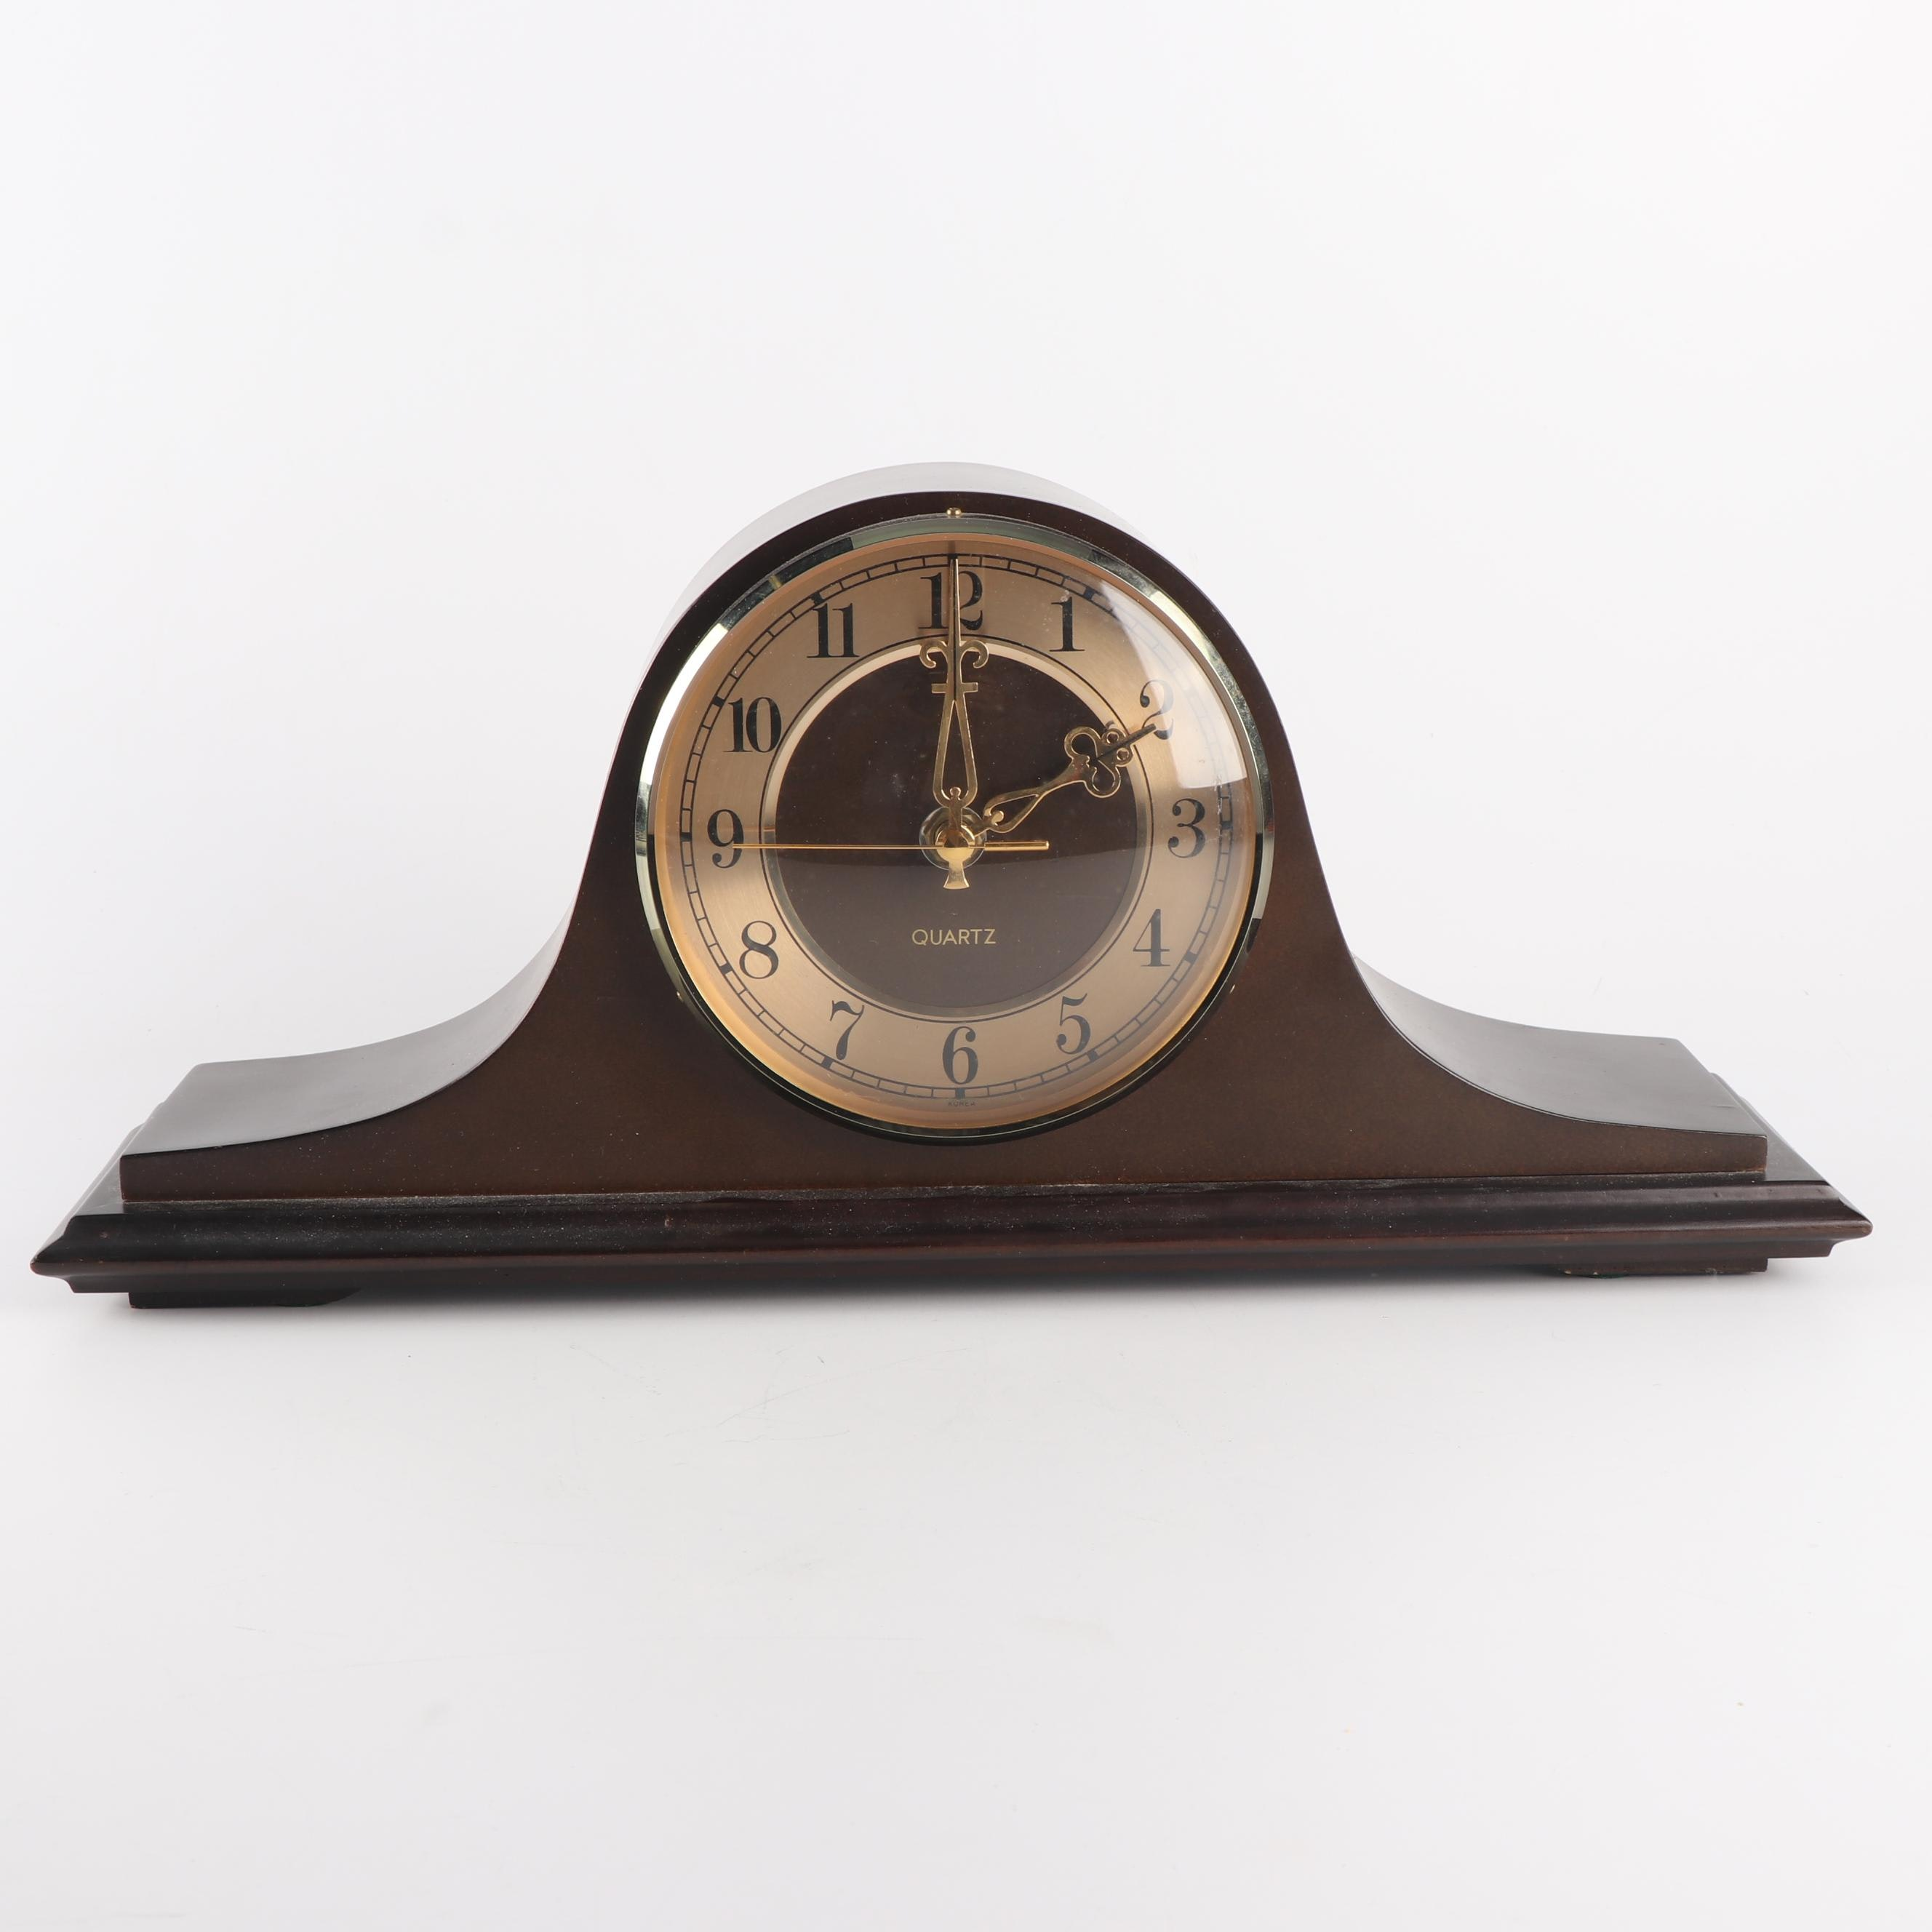 Quartz Mantel Clock with Wood Case and Speaker